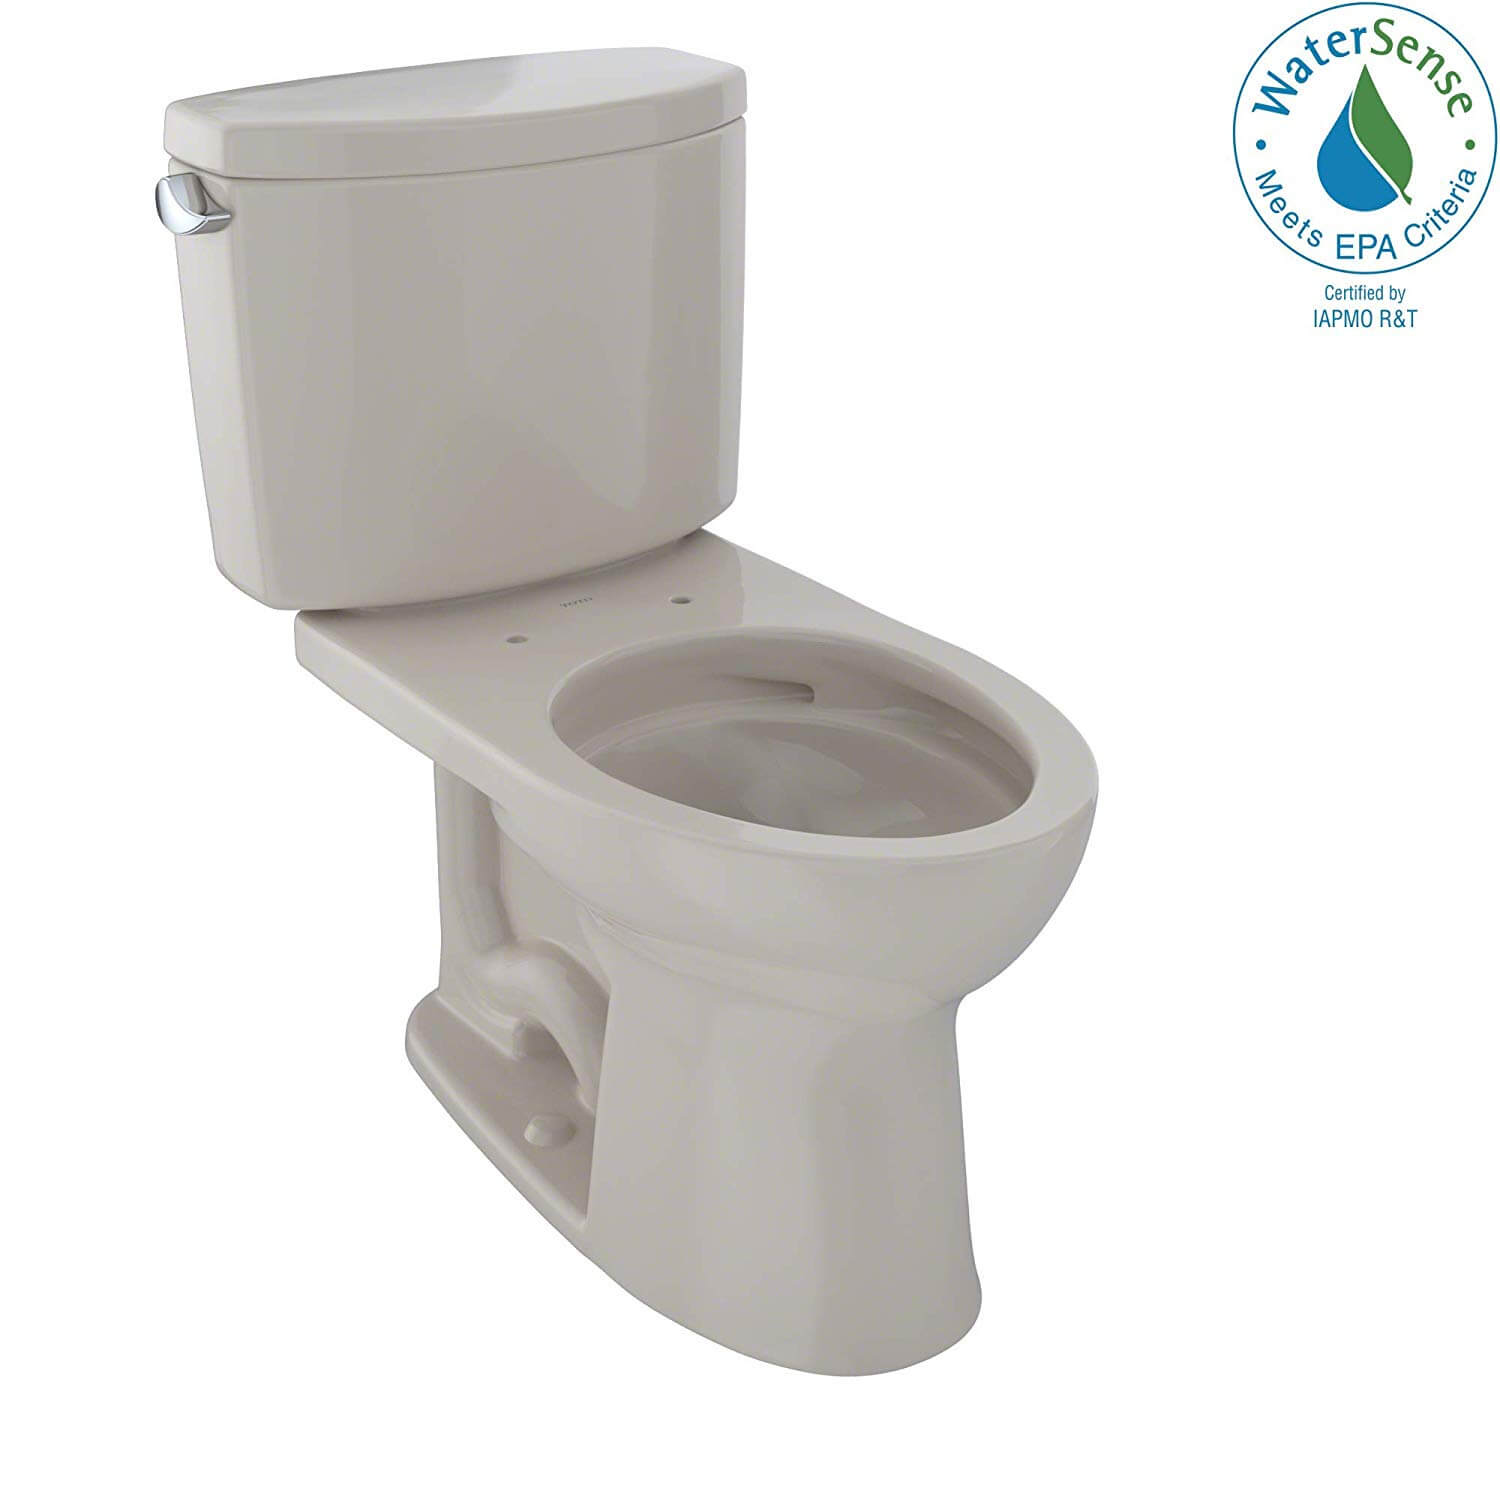 TOTO Drake II Toilet with CEFIONTECT